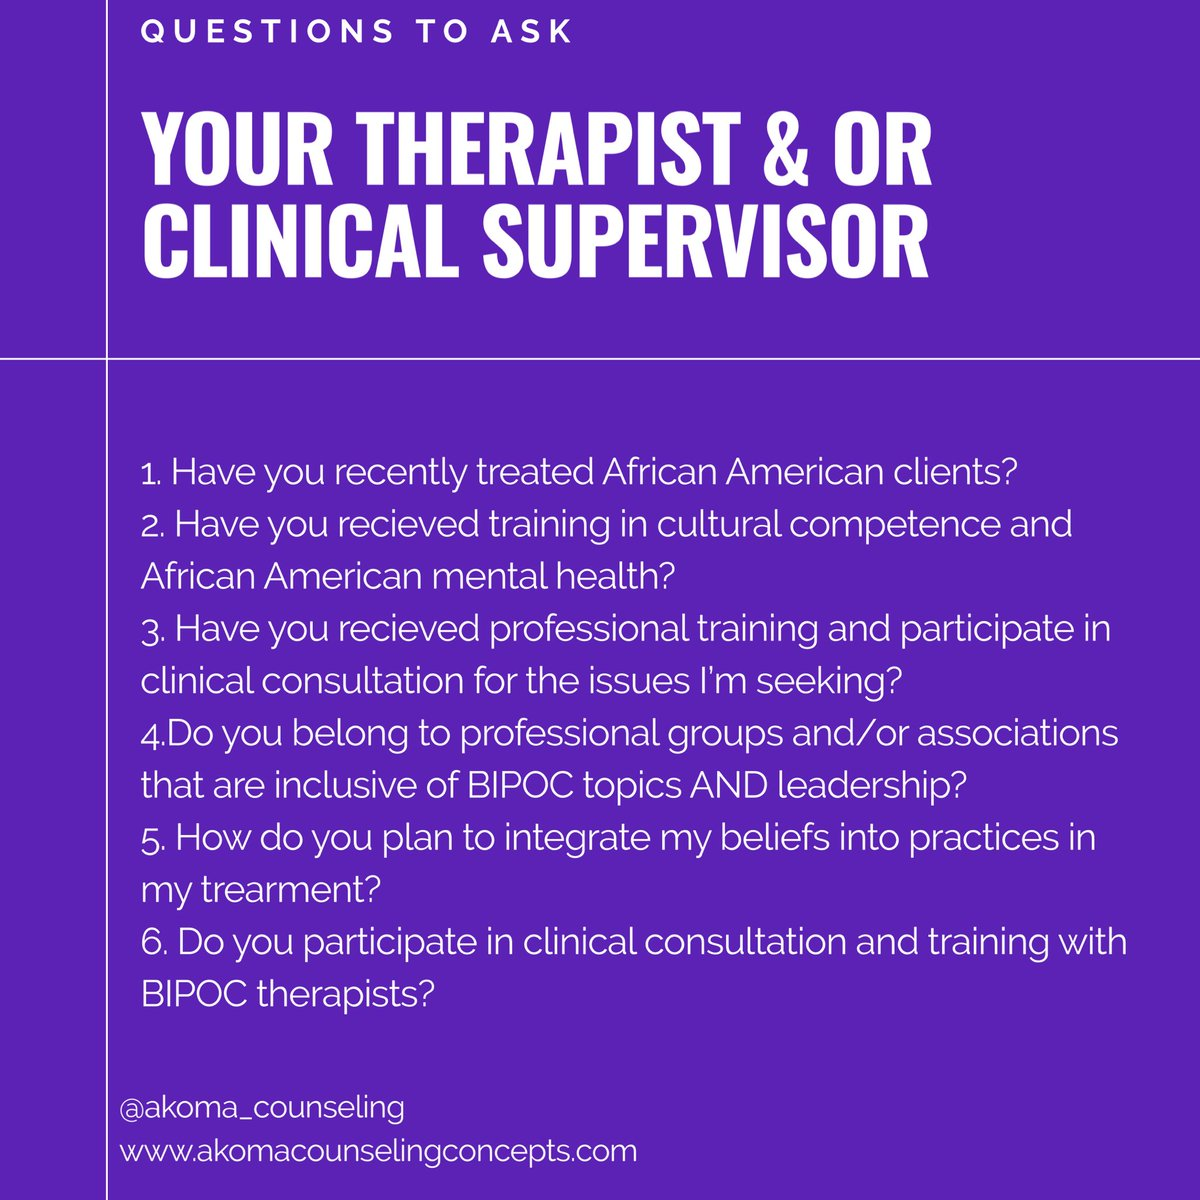 2. Have you recieved training in cultural competence and/oron African American #mentalhealth? #BlackMentalHealth #thread https://t.co/jMCFh1rqoO